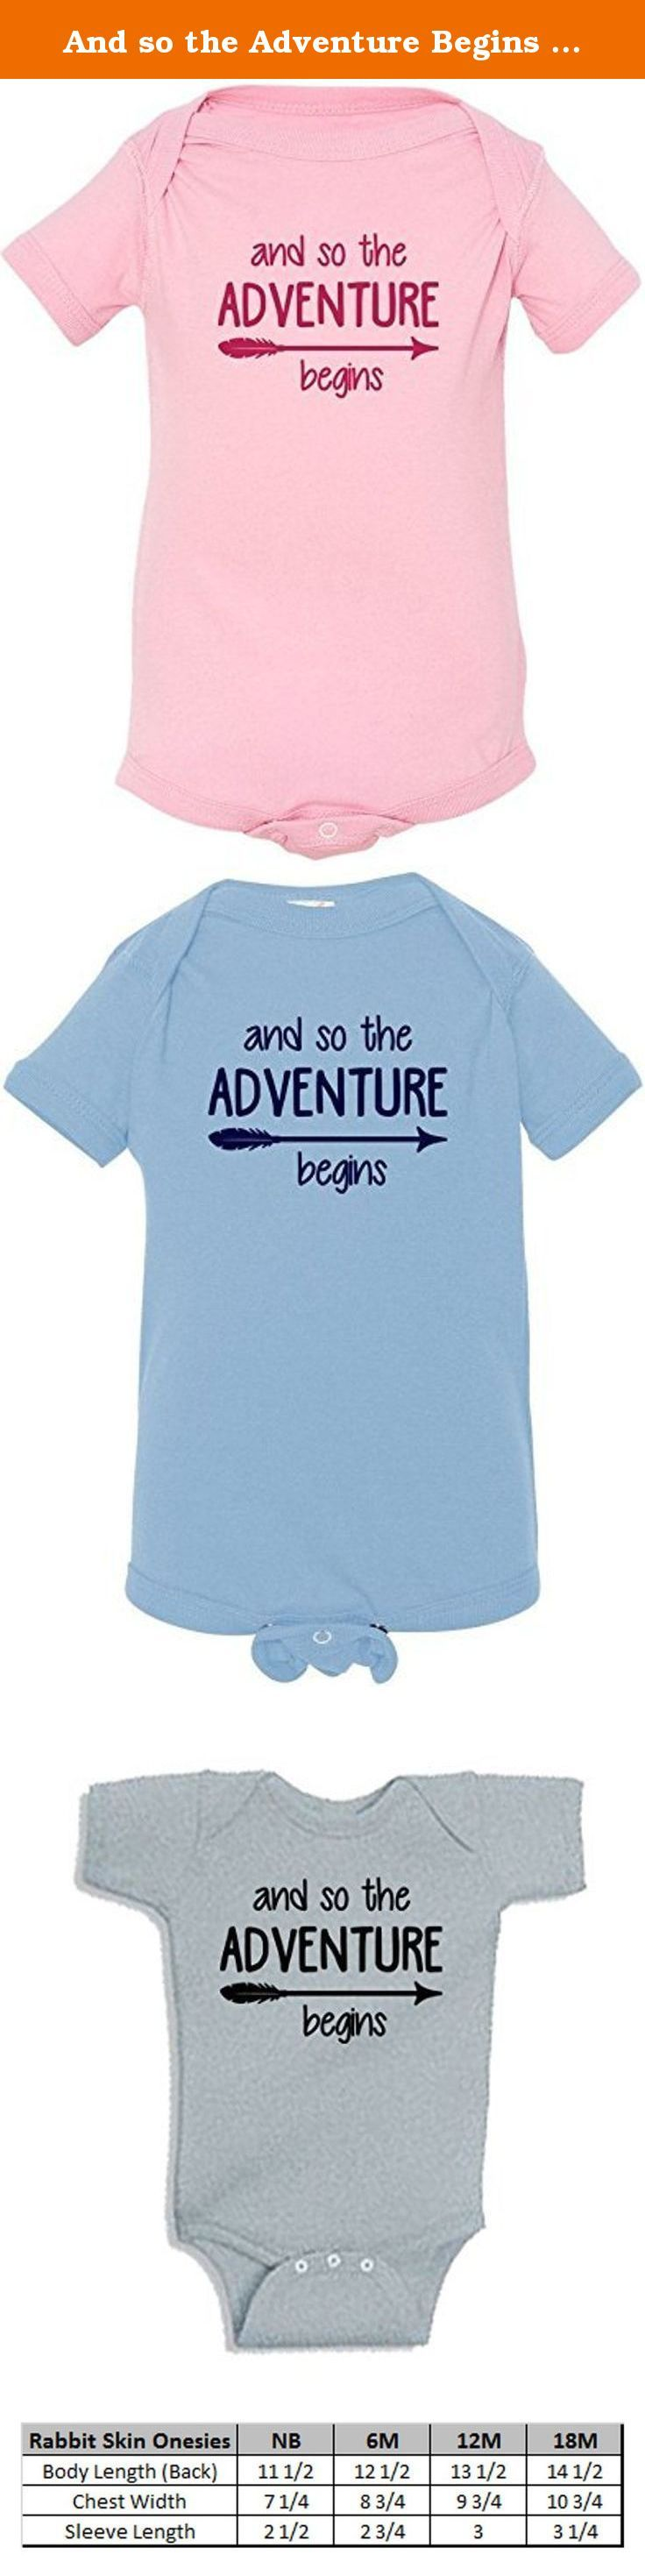 And so the Adventure Begins Onesie NB-18M Infant Romper Creeper. 100% Cotton. Soft and comfortable.